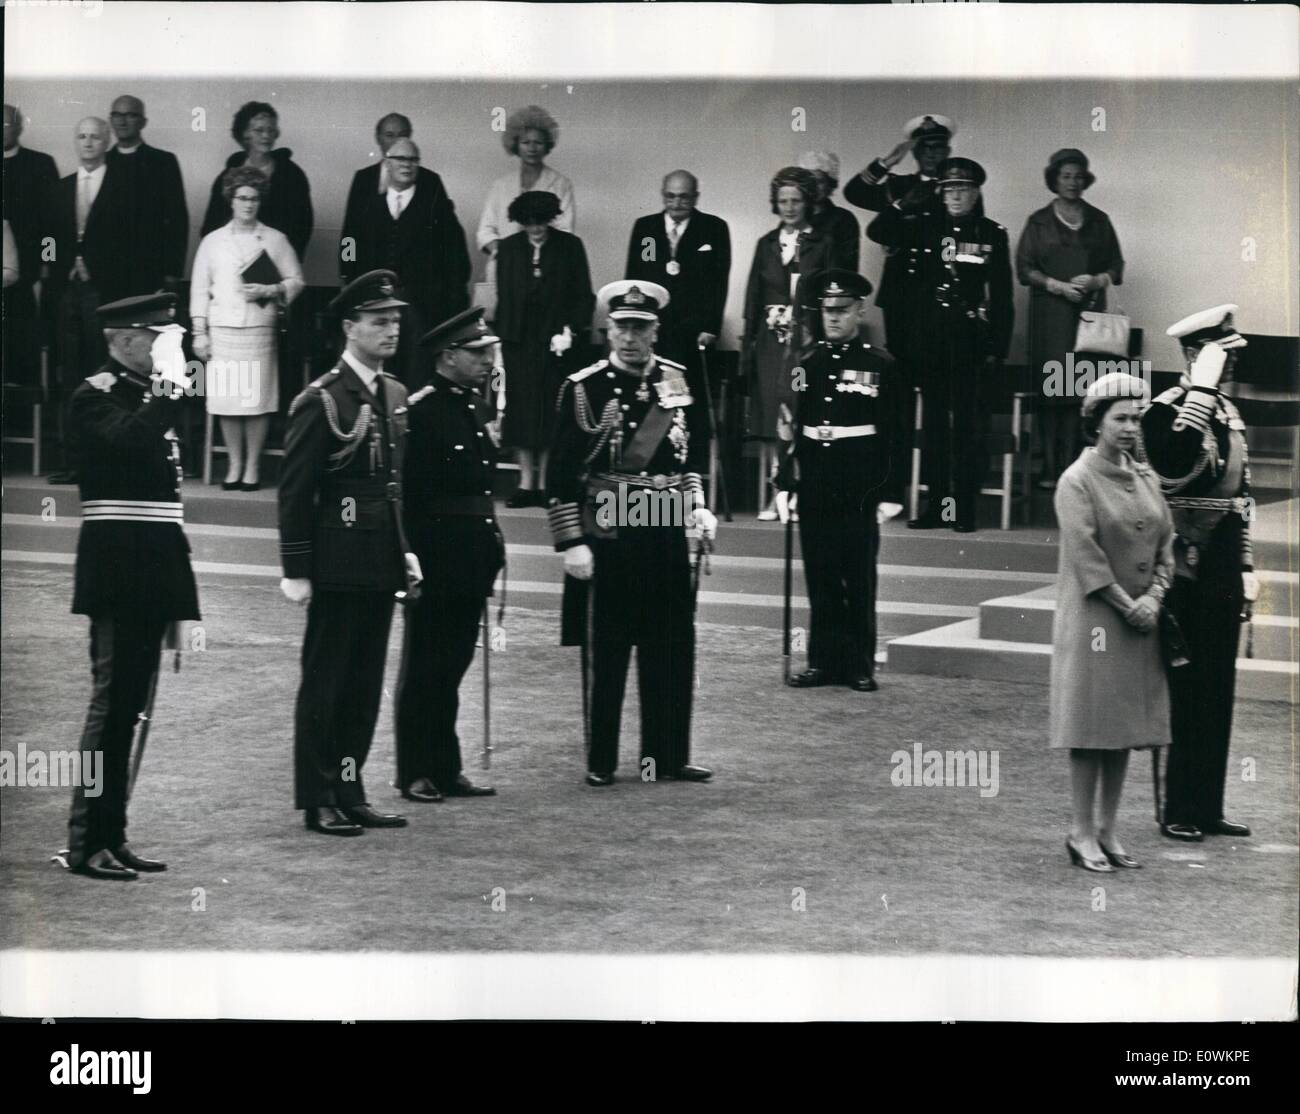 Jul. 07, 1963 - Royals in the Isle of Wight. The Right and Wrongs of a Royal Salute: The question is: do you salute if you are in uniform and the National Anthem is being played? Prince Philip knows the protocol, of course. Unhesitatingly his right hank snapped up as a band sounded the first note when the Queen arrived at Carisbrooke Castle, Isle of Wight, yesterday. Lord Mountbatten was equally expert. He unhesitatingly kept his hand by his side - Stock Image